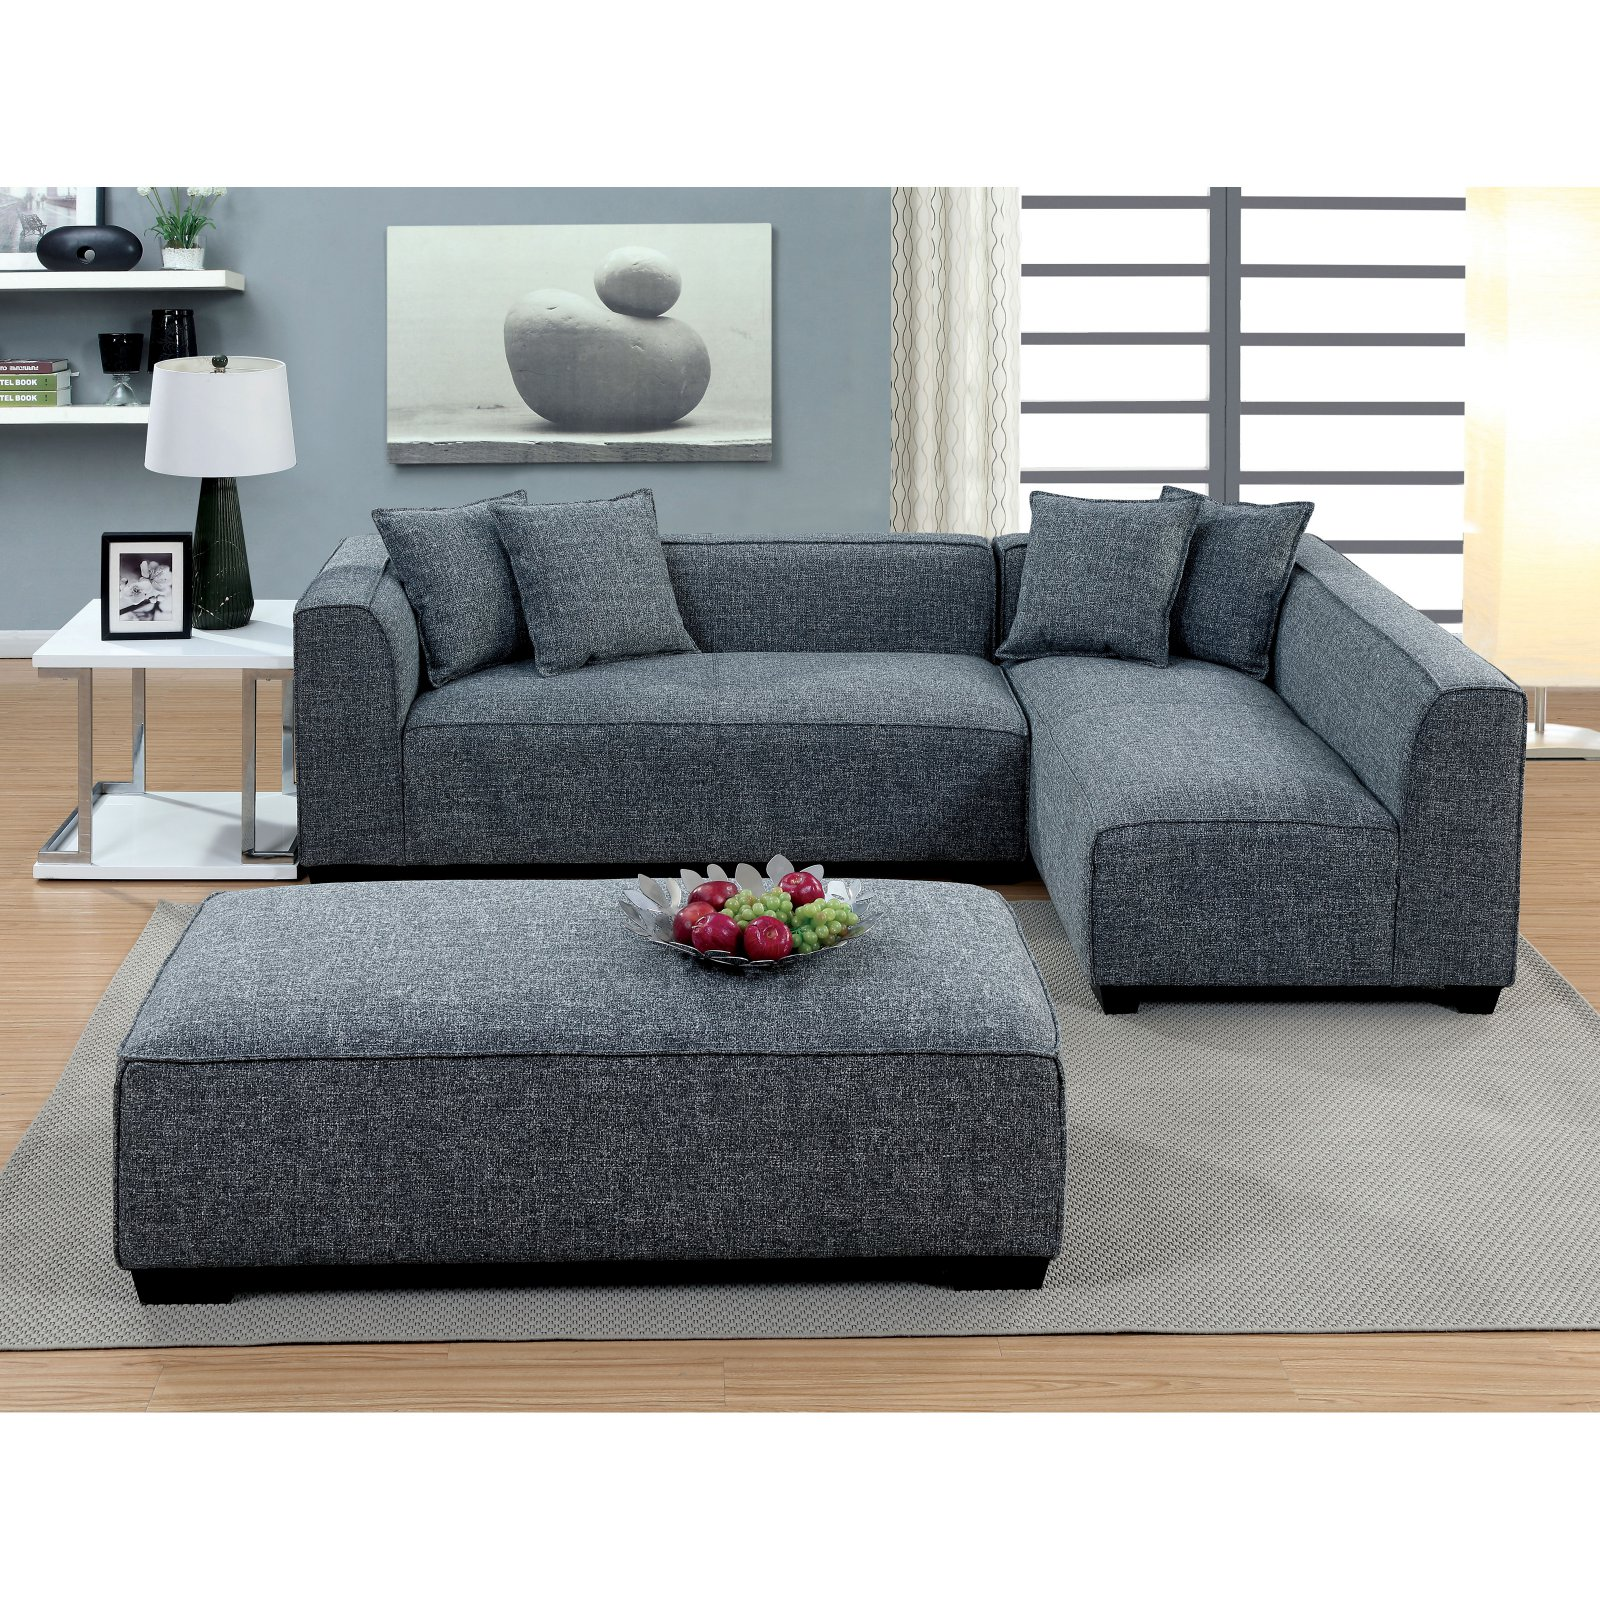 Furniture of America Misha Contemporary Style Plush Sectional Sofa